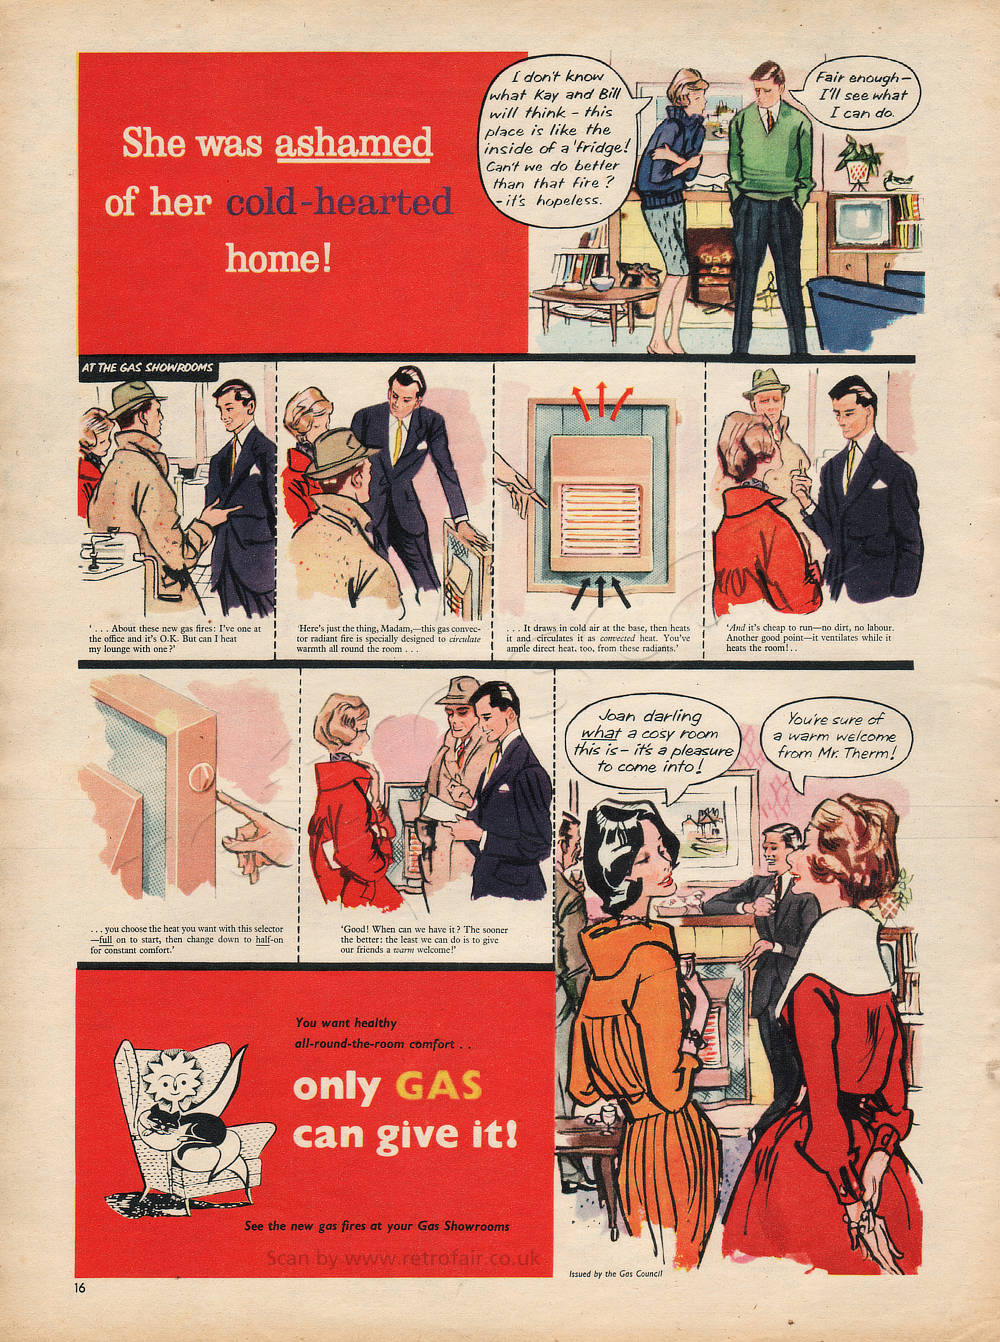 1959 Gas Council - unframed vintage ad